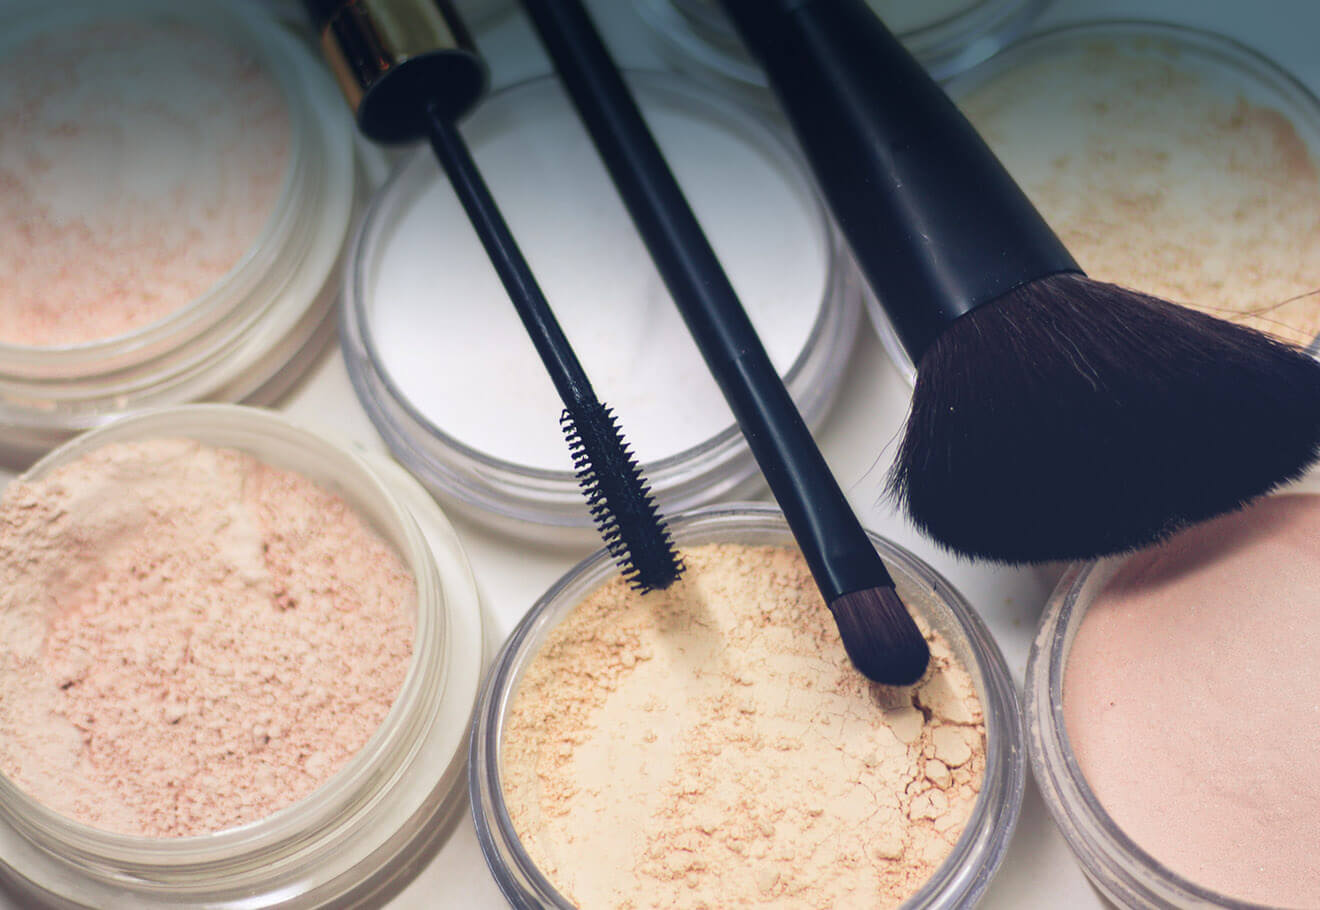 Set of makeup powders and brushes